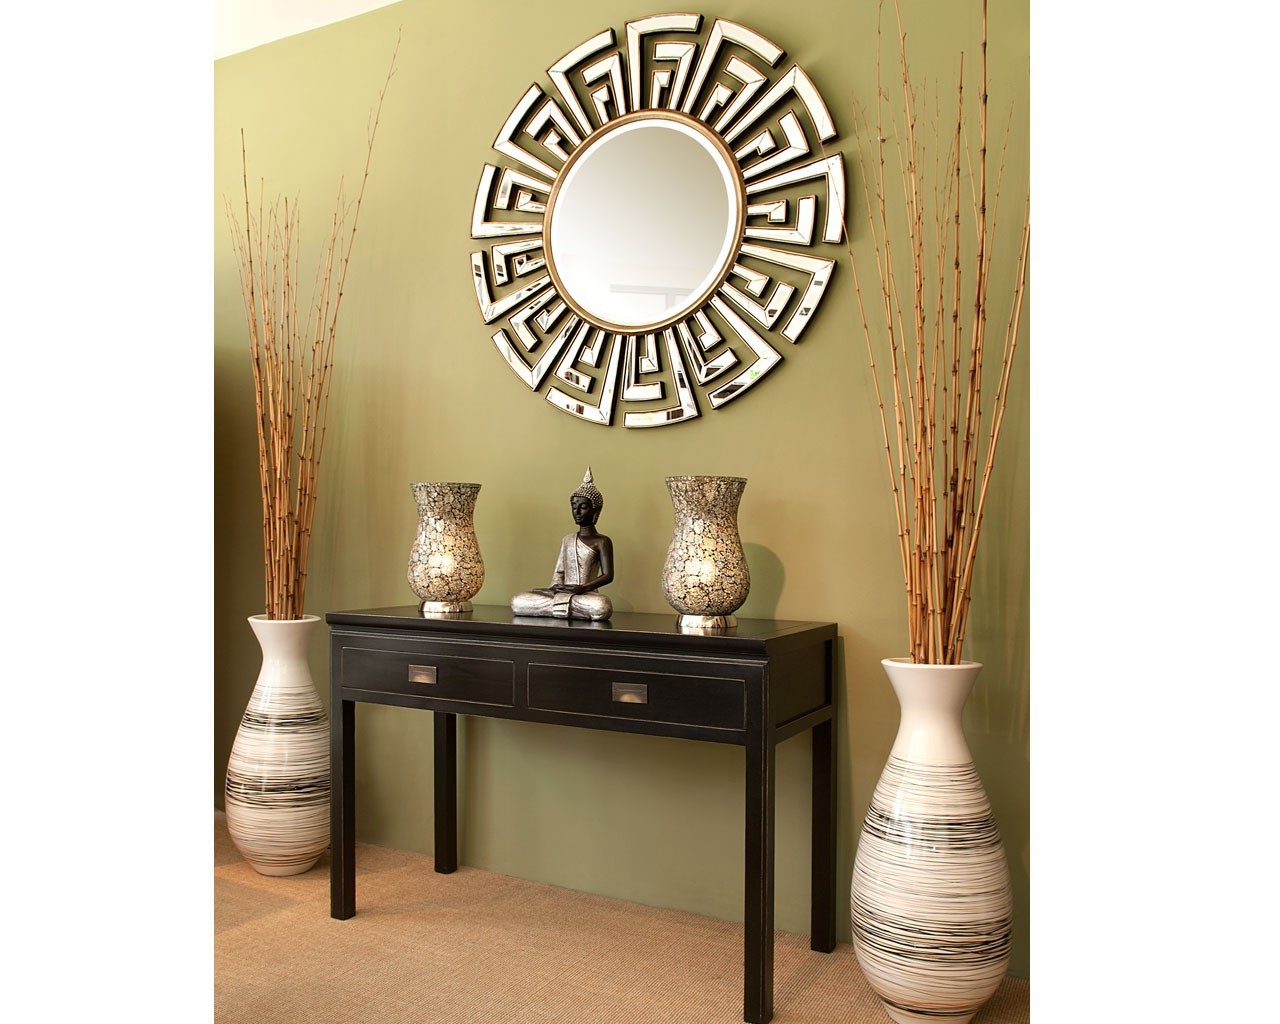 Contemporary Round Mirrors 36 X 42 Mirror Modern Decoration Italian Within Most Current Mini Wall Mirrors (View 11 of 20)